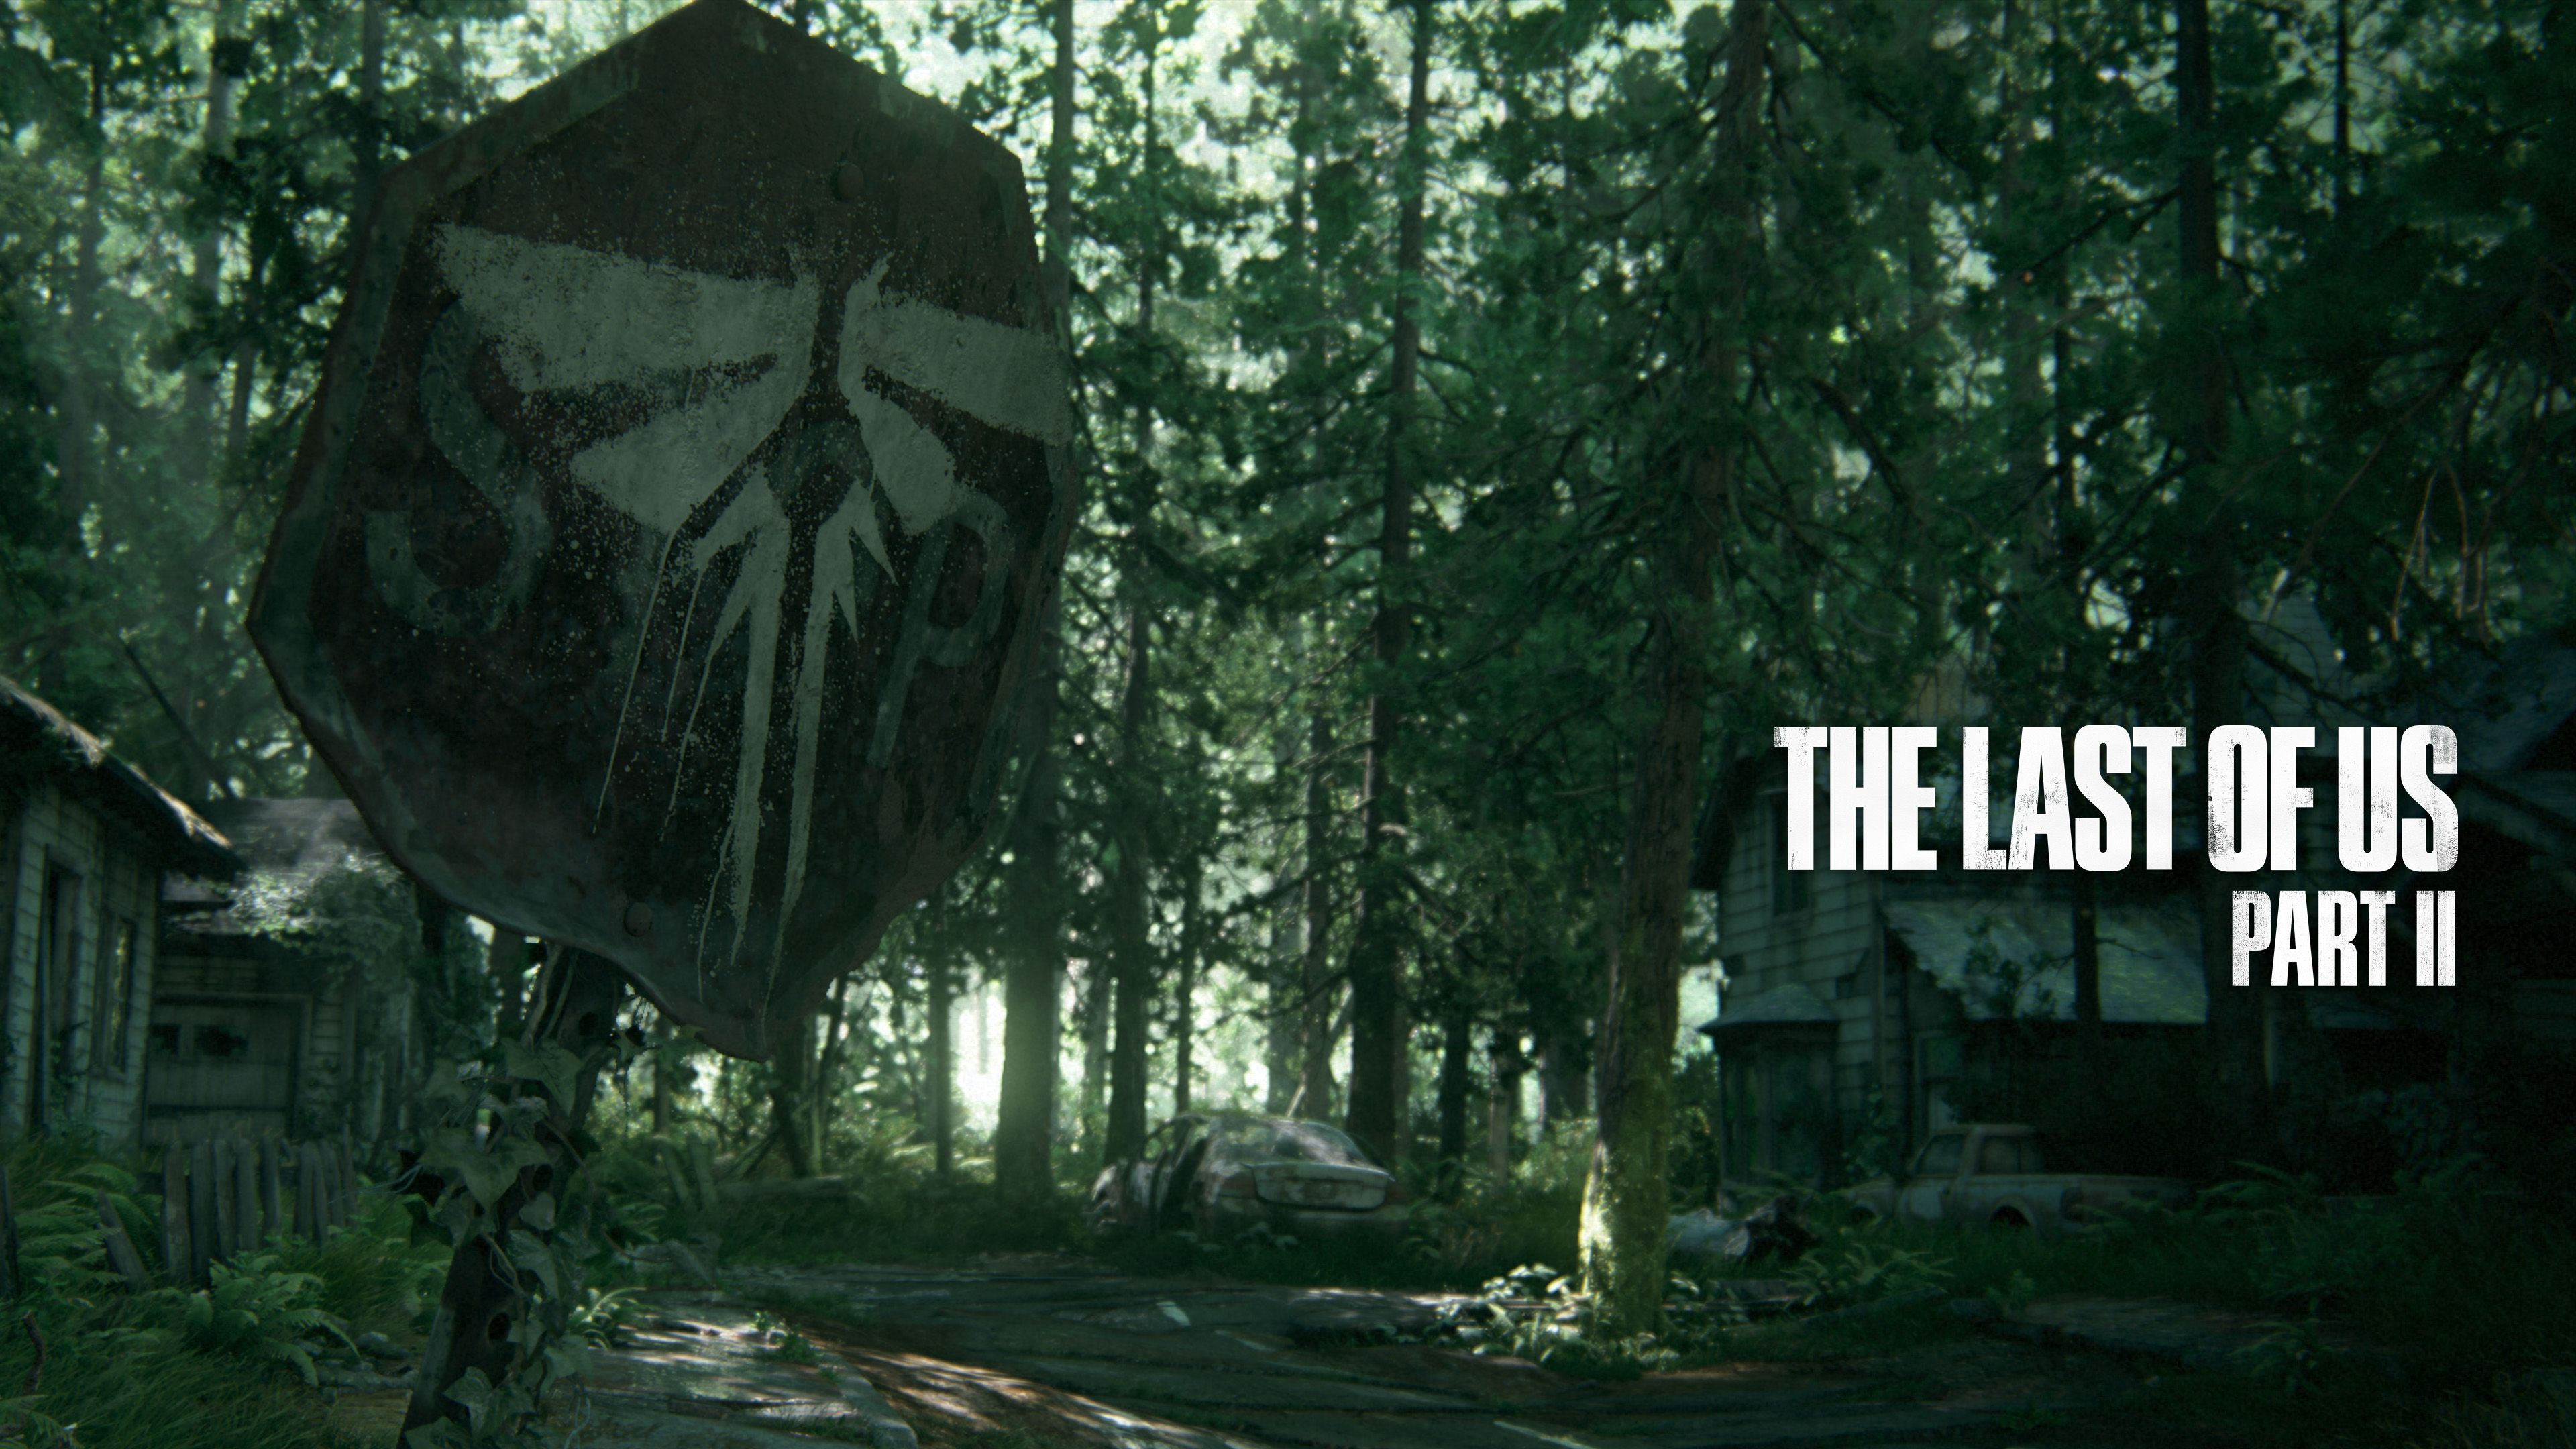 The Last of Us 2 Wallpapers - Top Free The Last of Us 2 ...